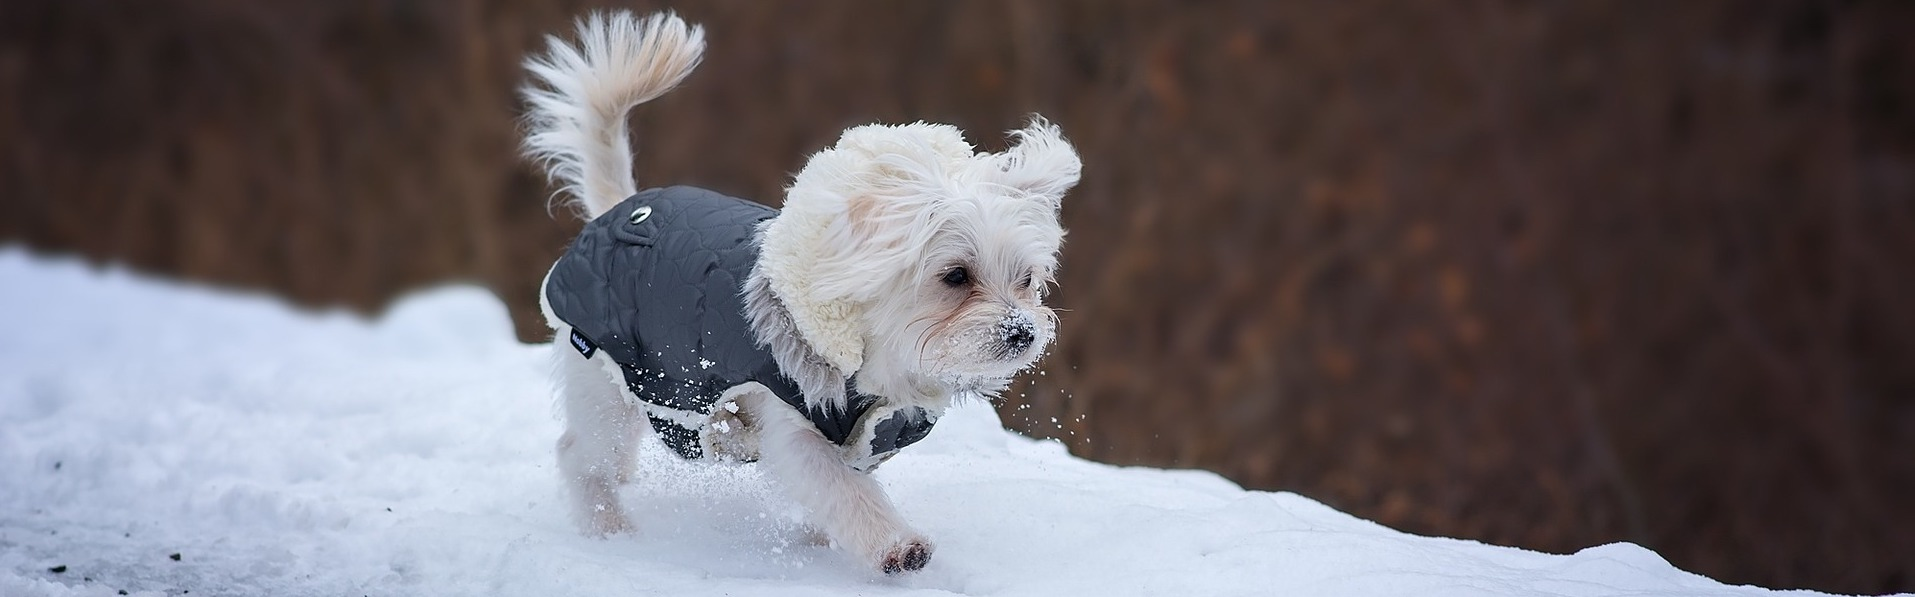 chien hiver manteau froid animaux